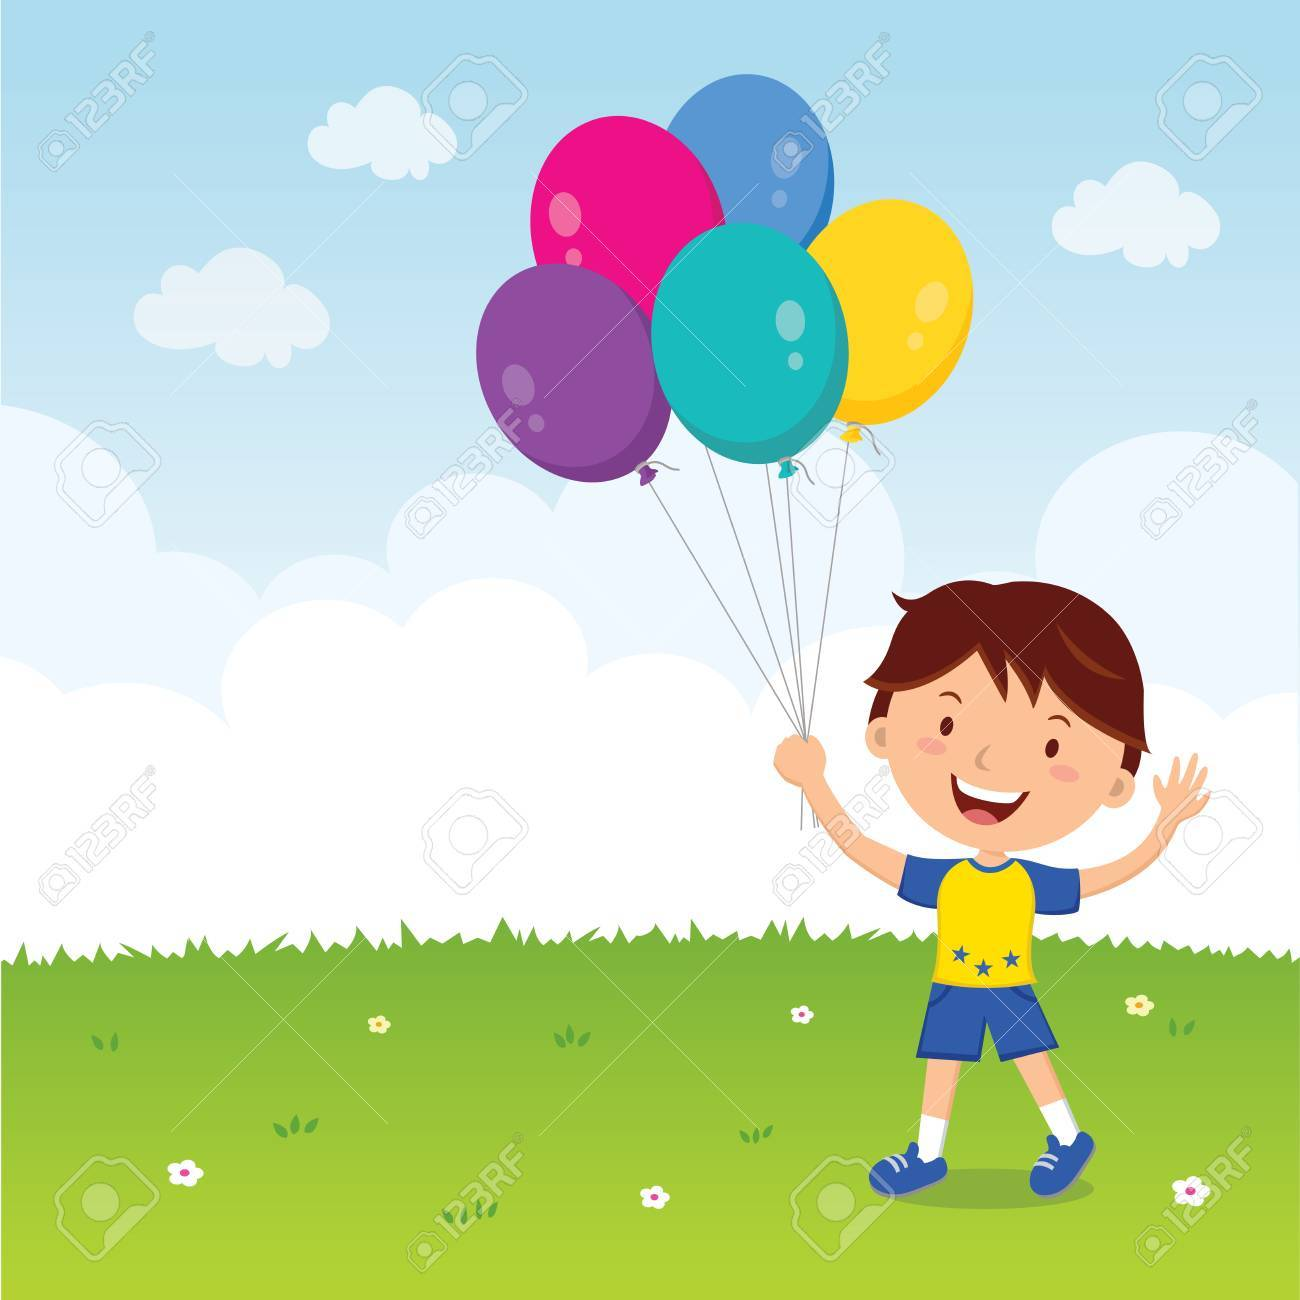 Boy holding balloons. Happy boy gesturing with colorful balloons..